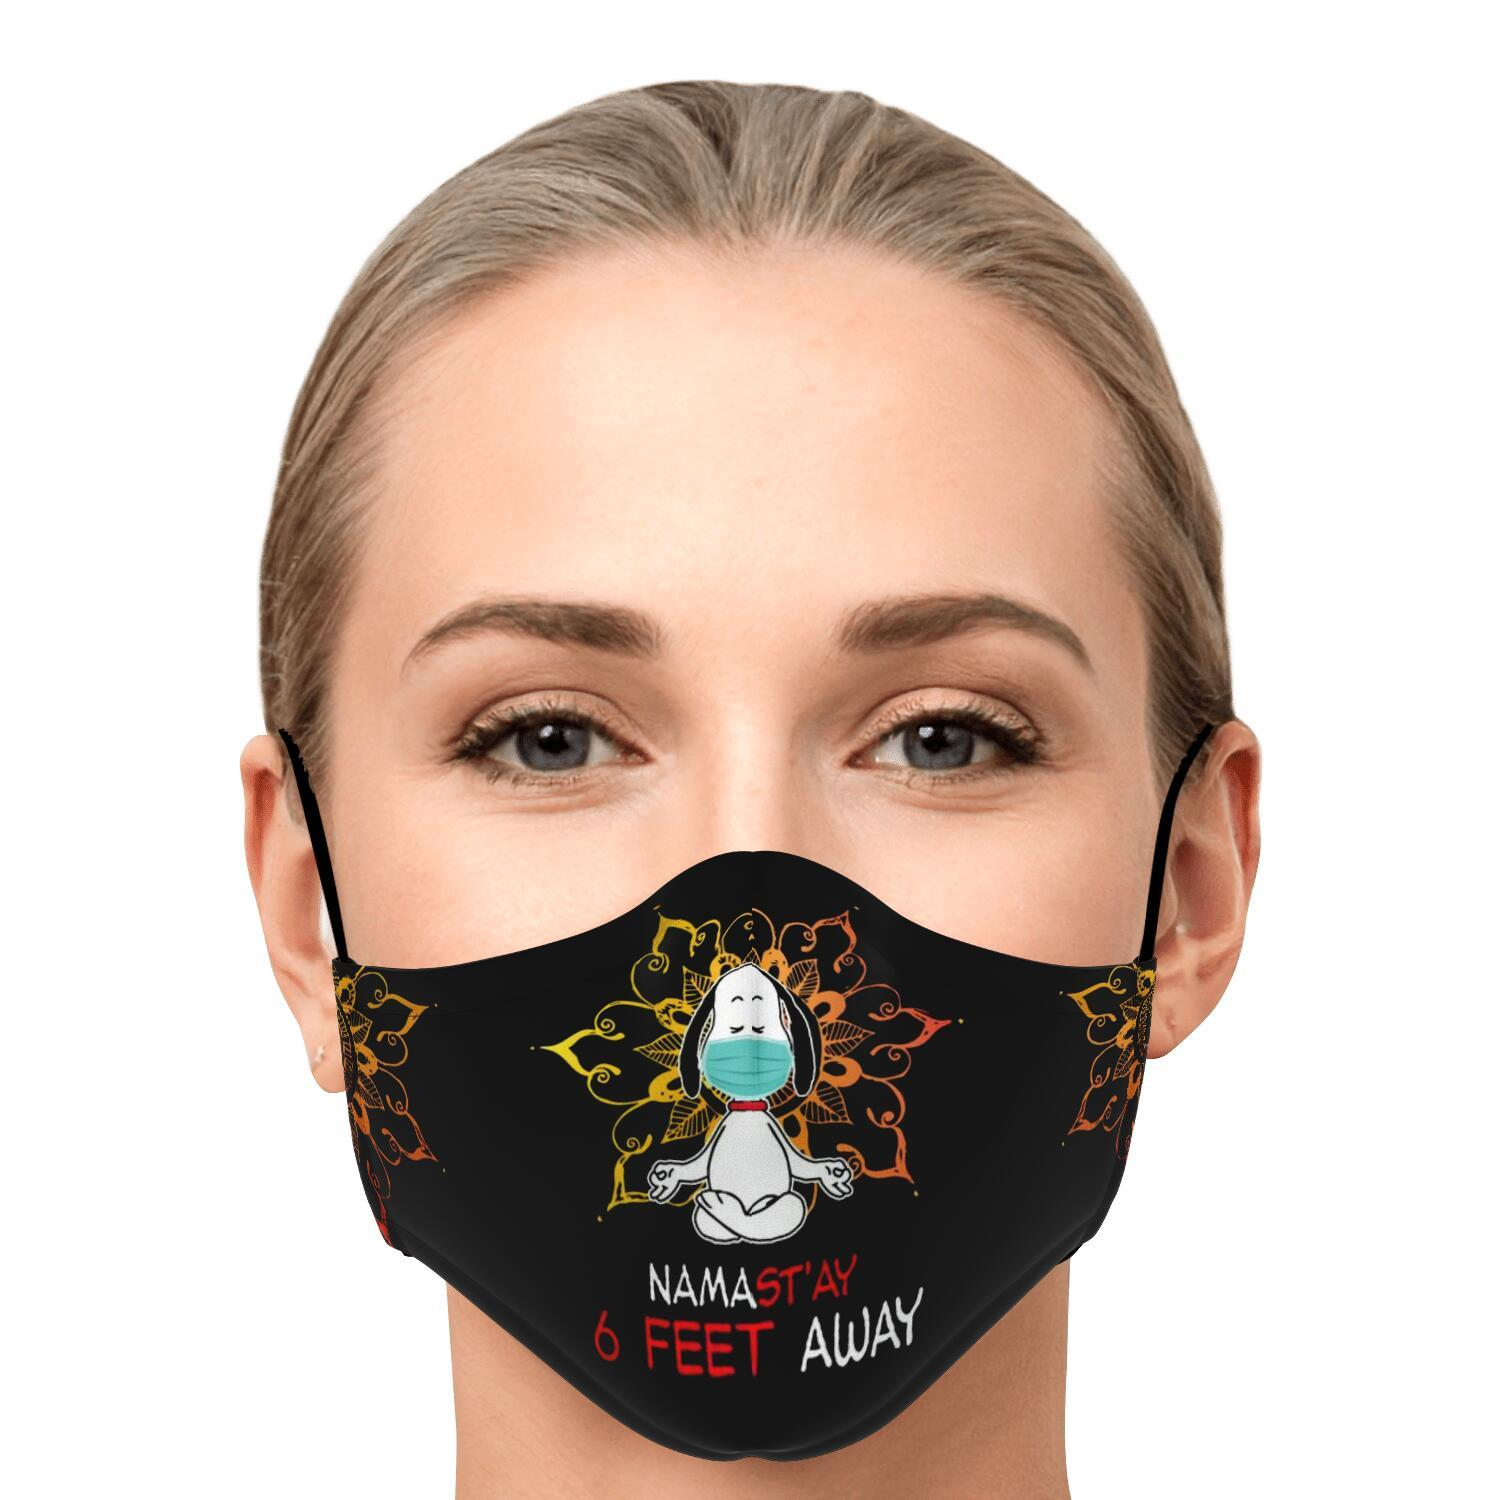 Namast'ay 6 Feet Away Corona Virus Snoopy Face Mask 1